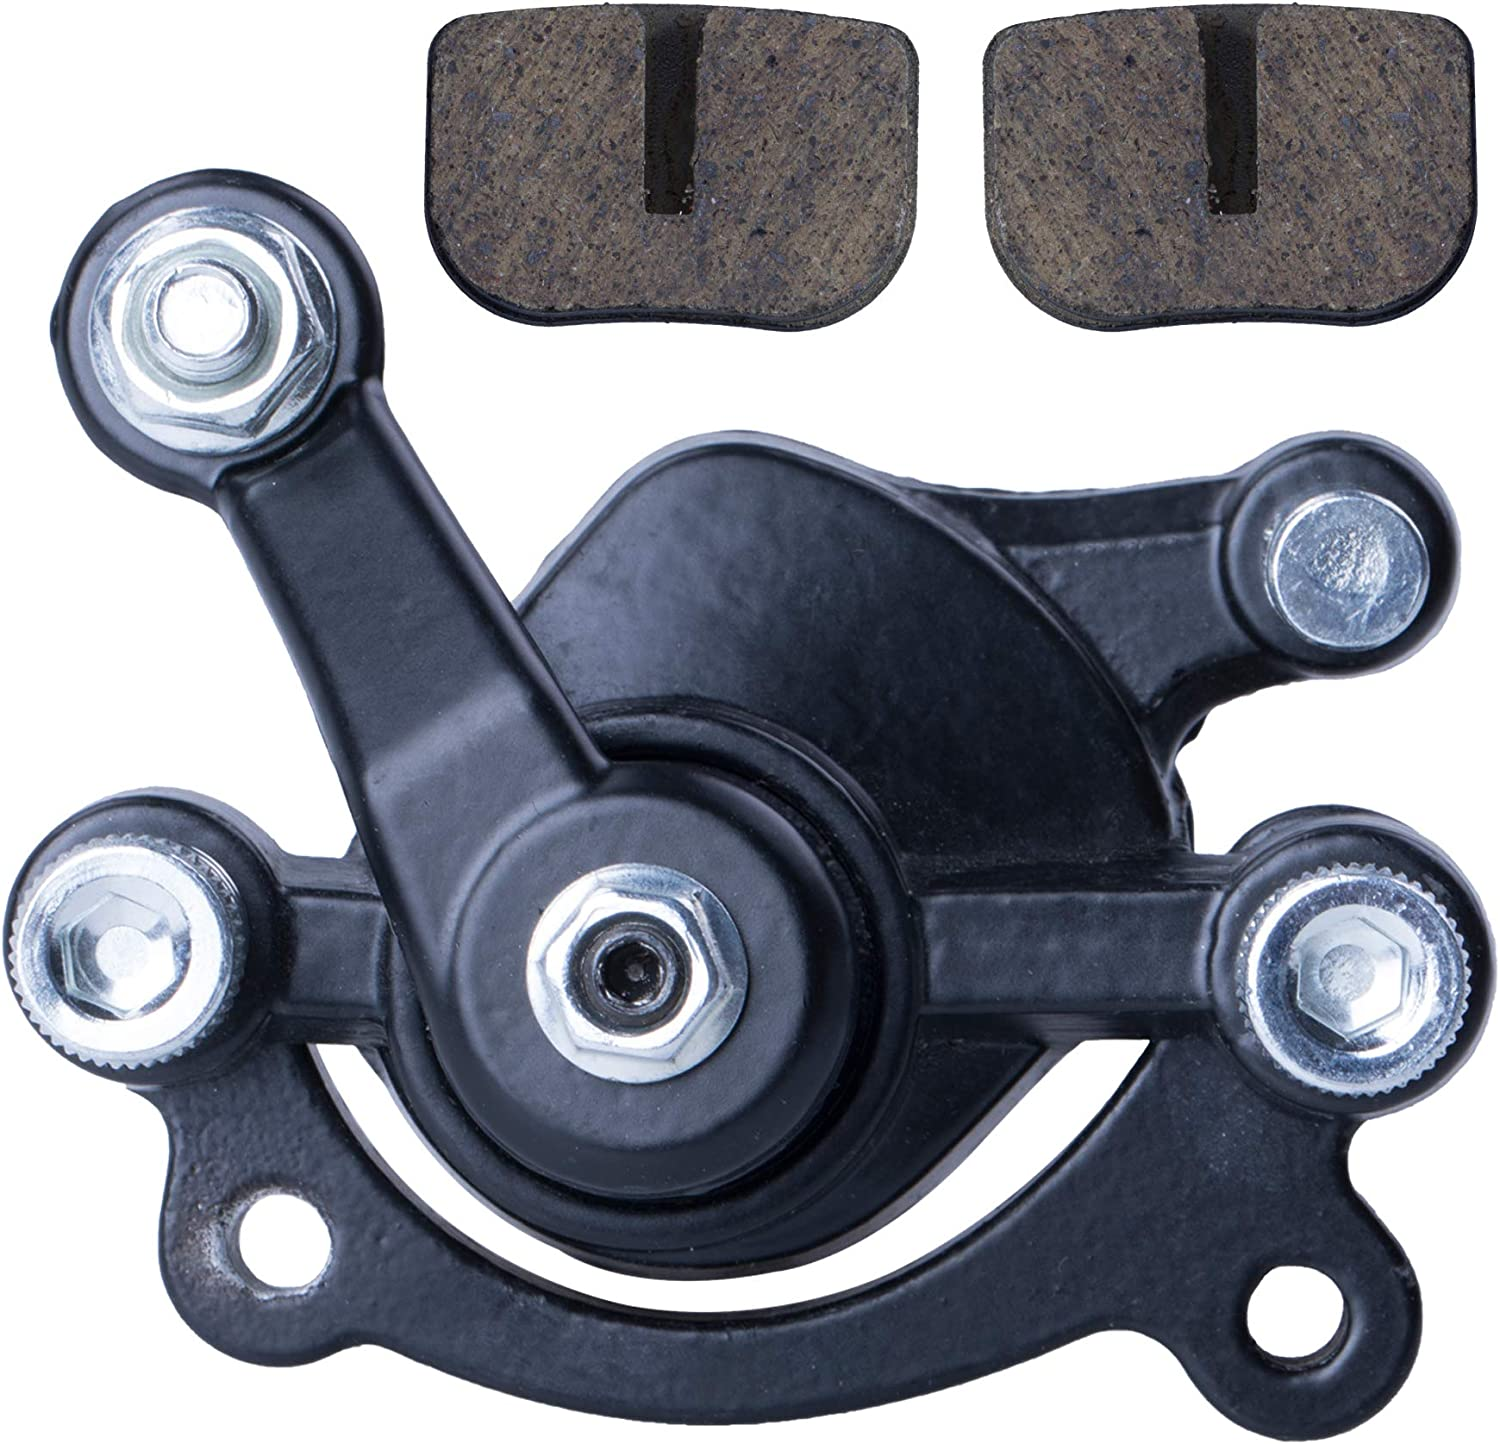 Max 67% OFF MWMNUN Rear Disc Brake Caliper Replaced with Compatible With Jacksonville Mall Pad